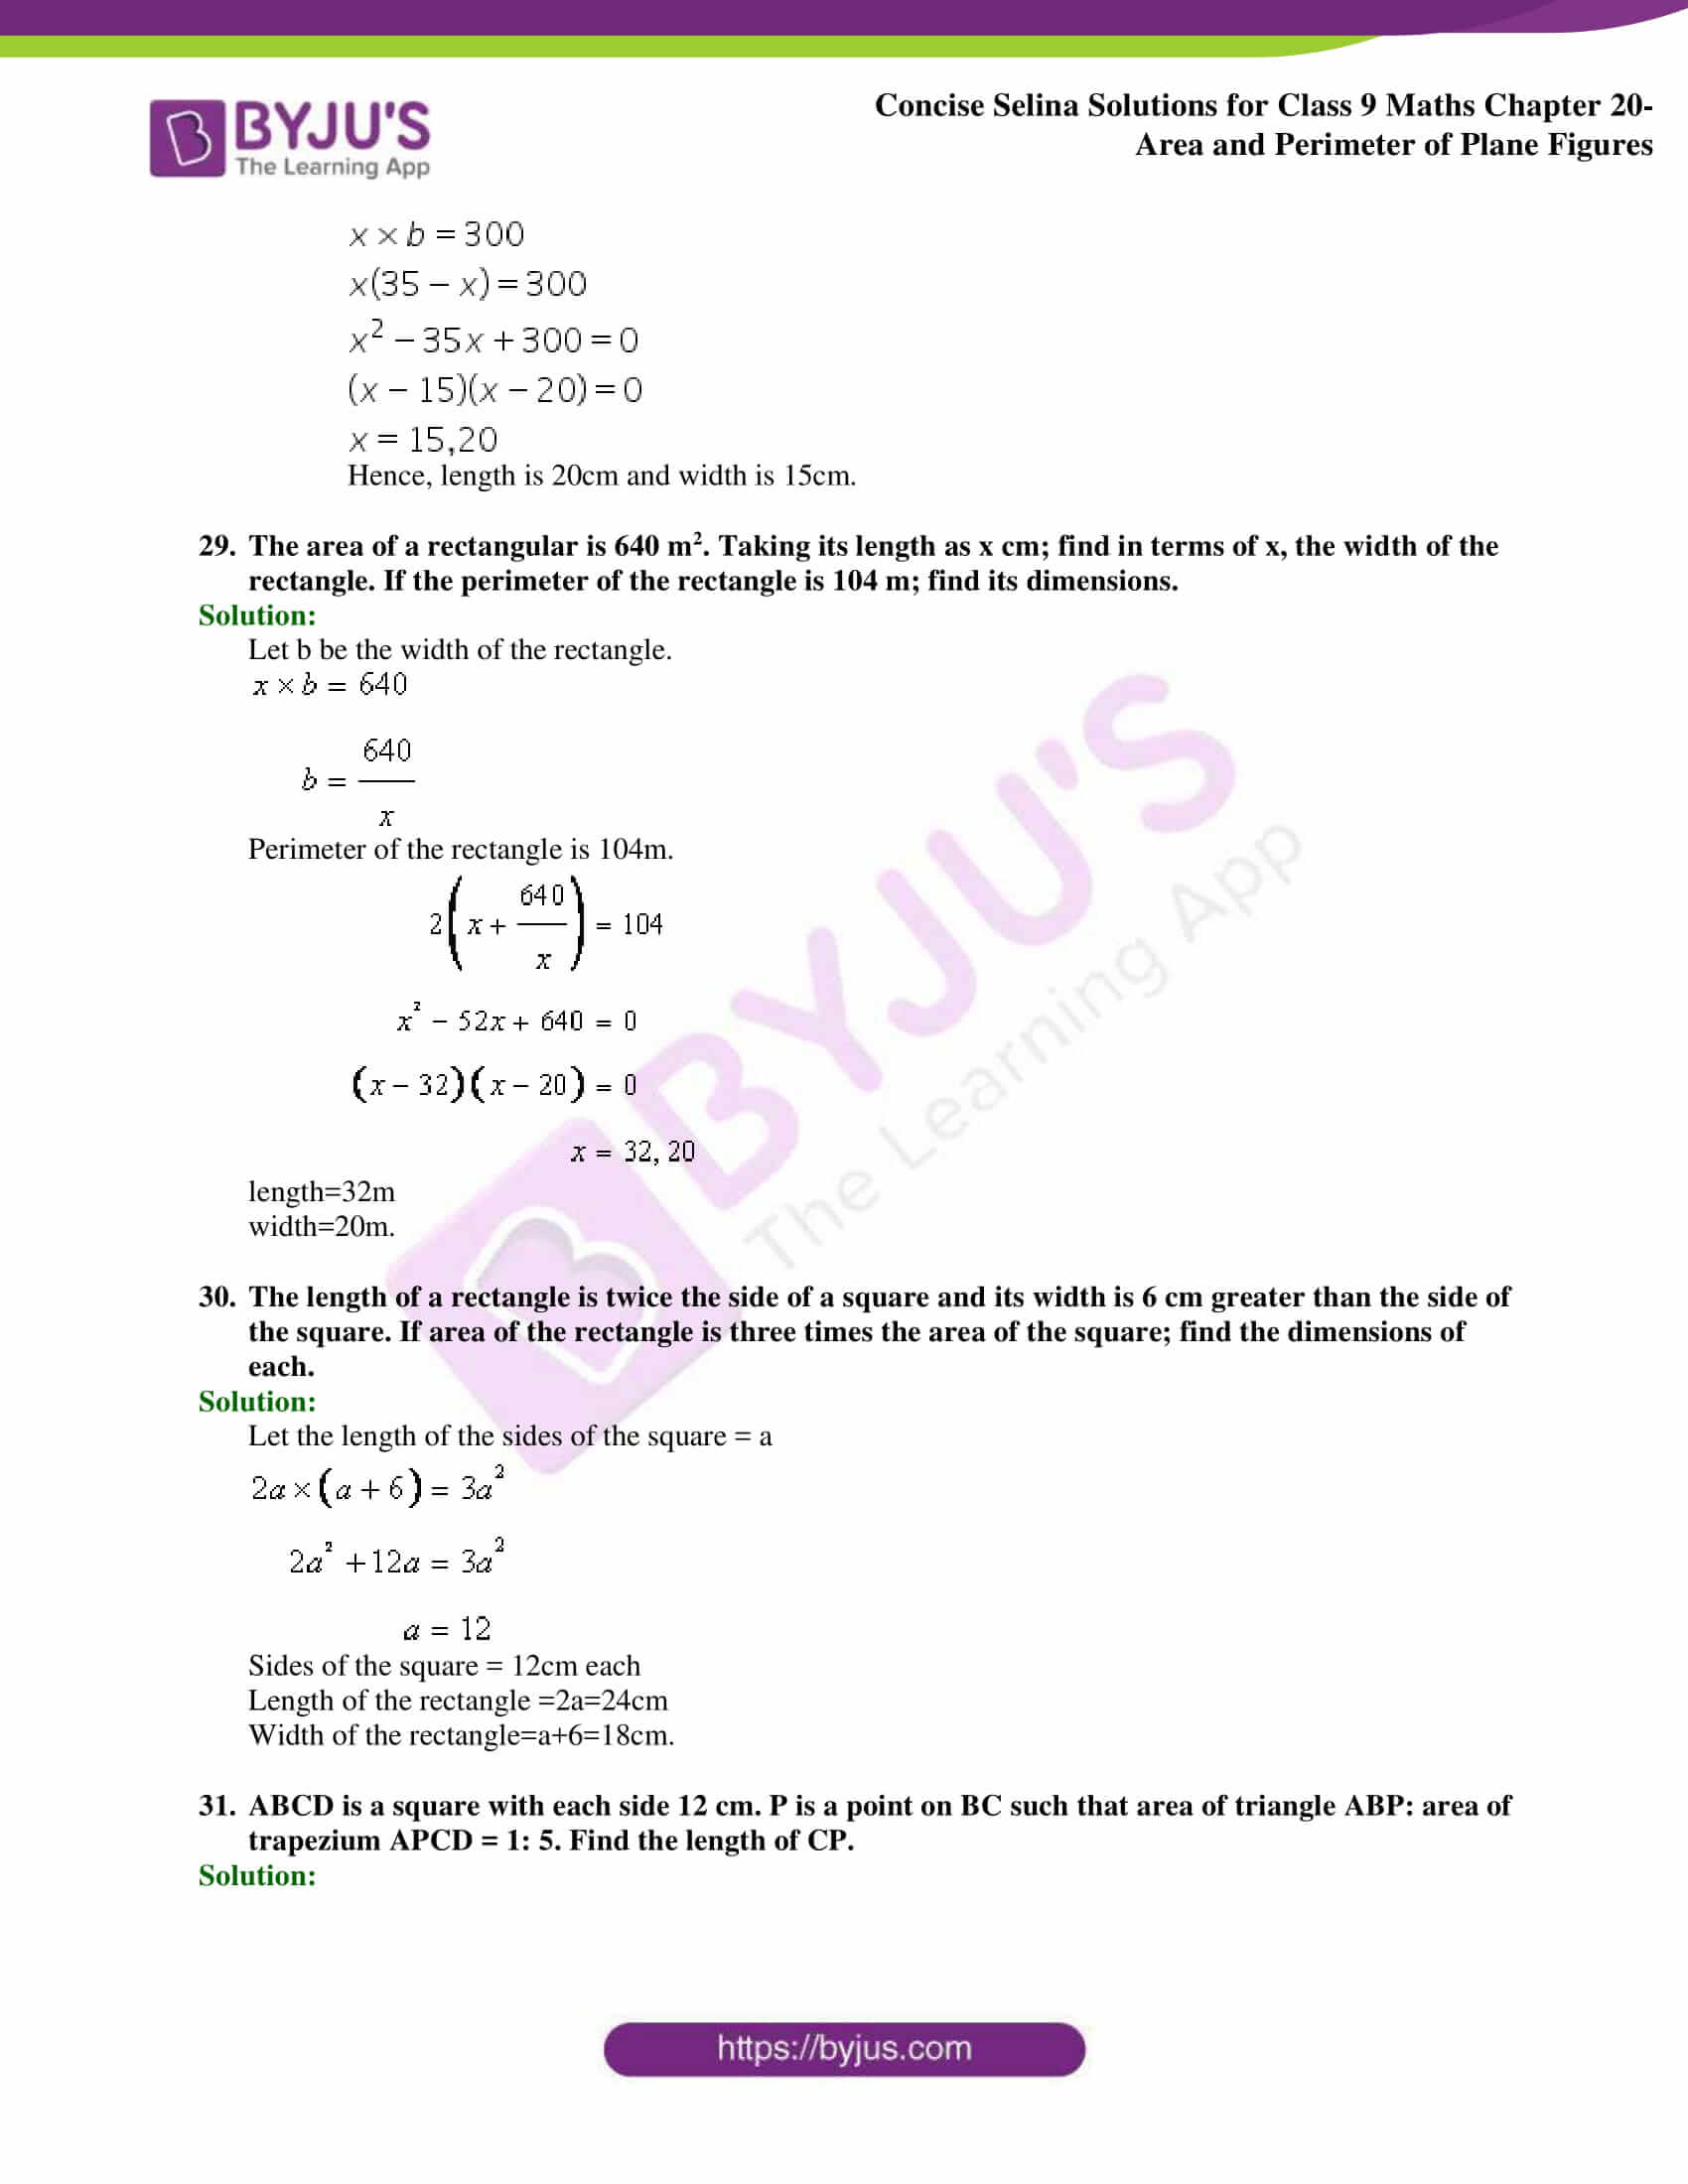 Concise Selina Solutions Class 9 Maths Chapter 20 Area and Perimeter of Plane part 29